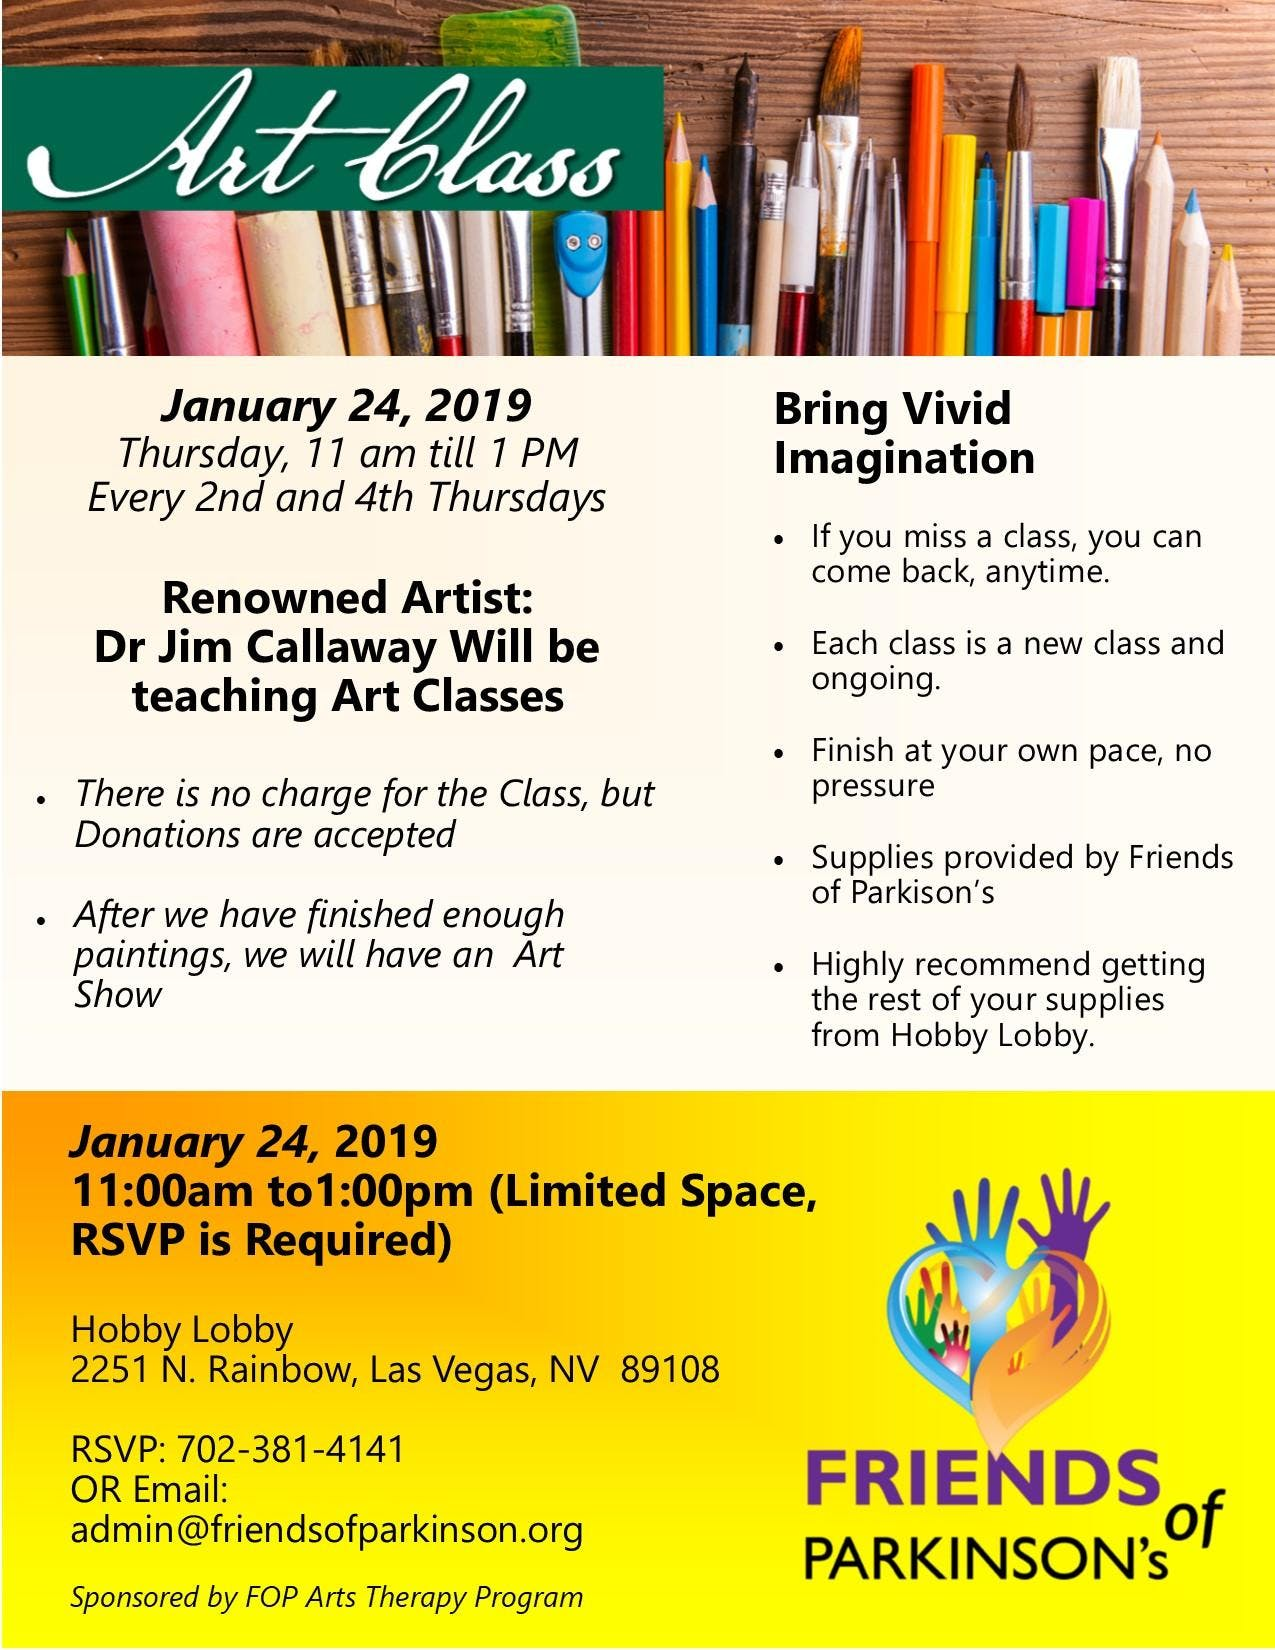 Free Art Classes with Friends of Parkinsons